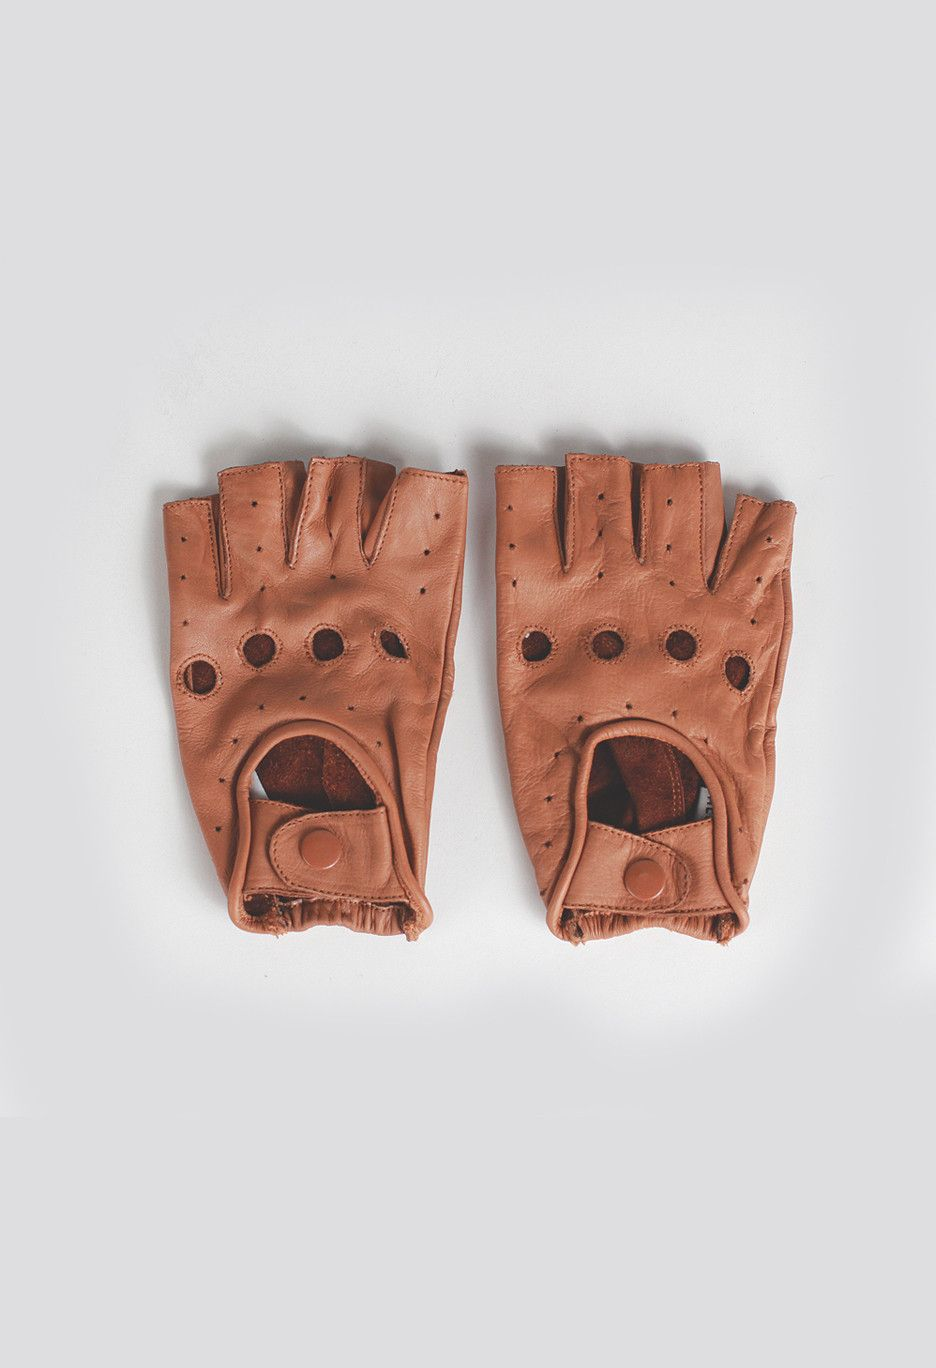 Black leather cut off gloves - Genuine Leather Cut Off Driving Gloves In Tan